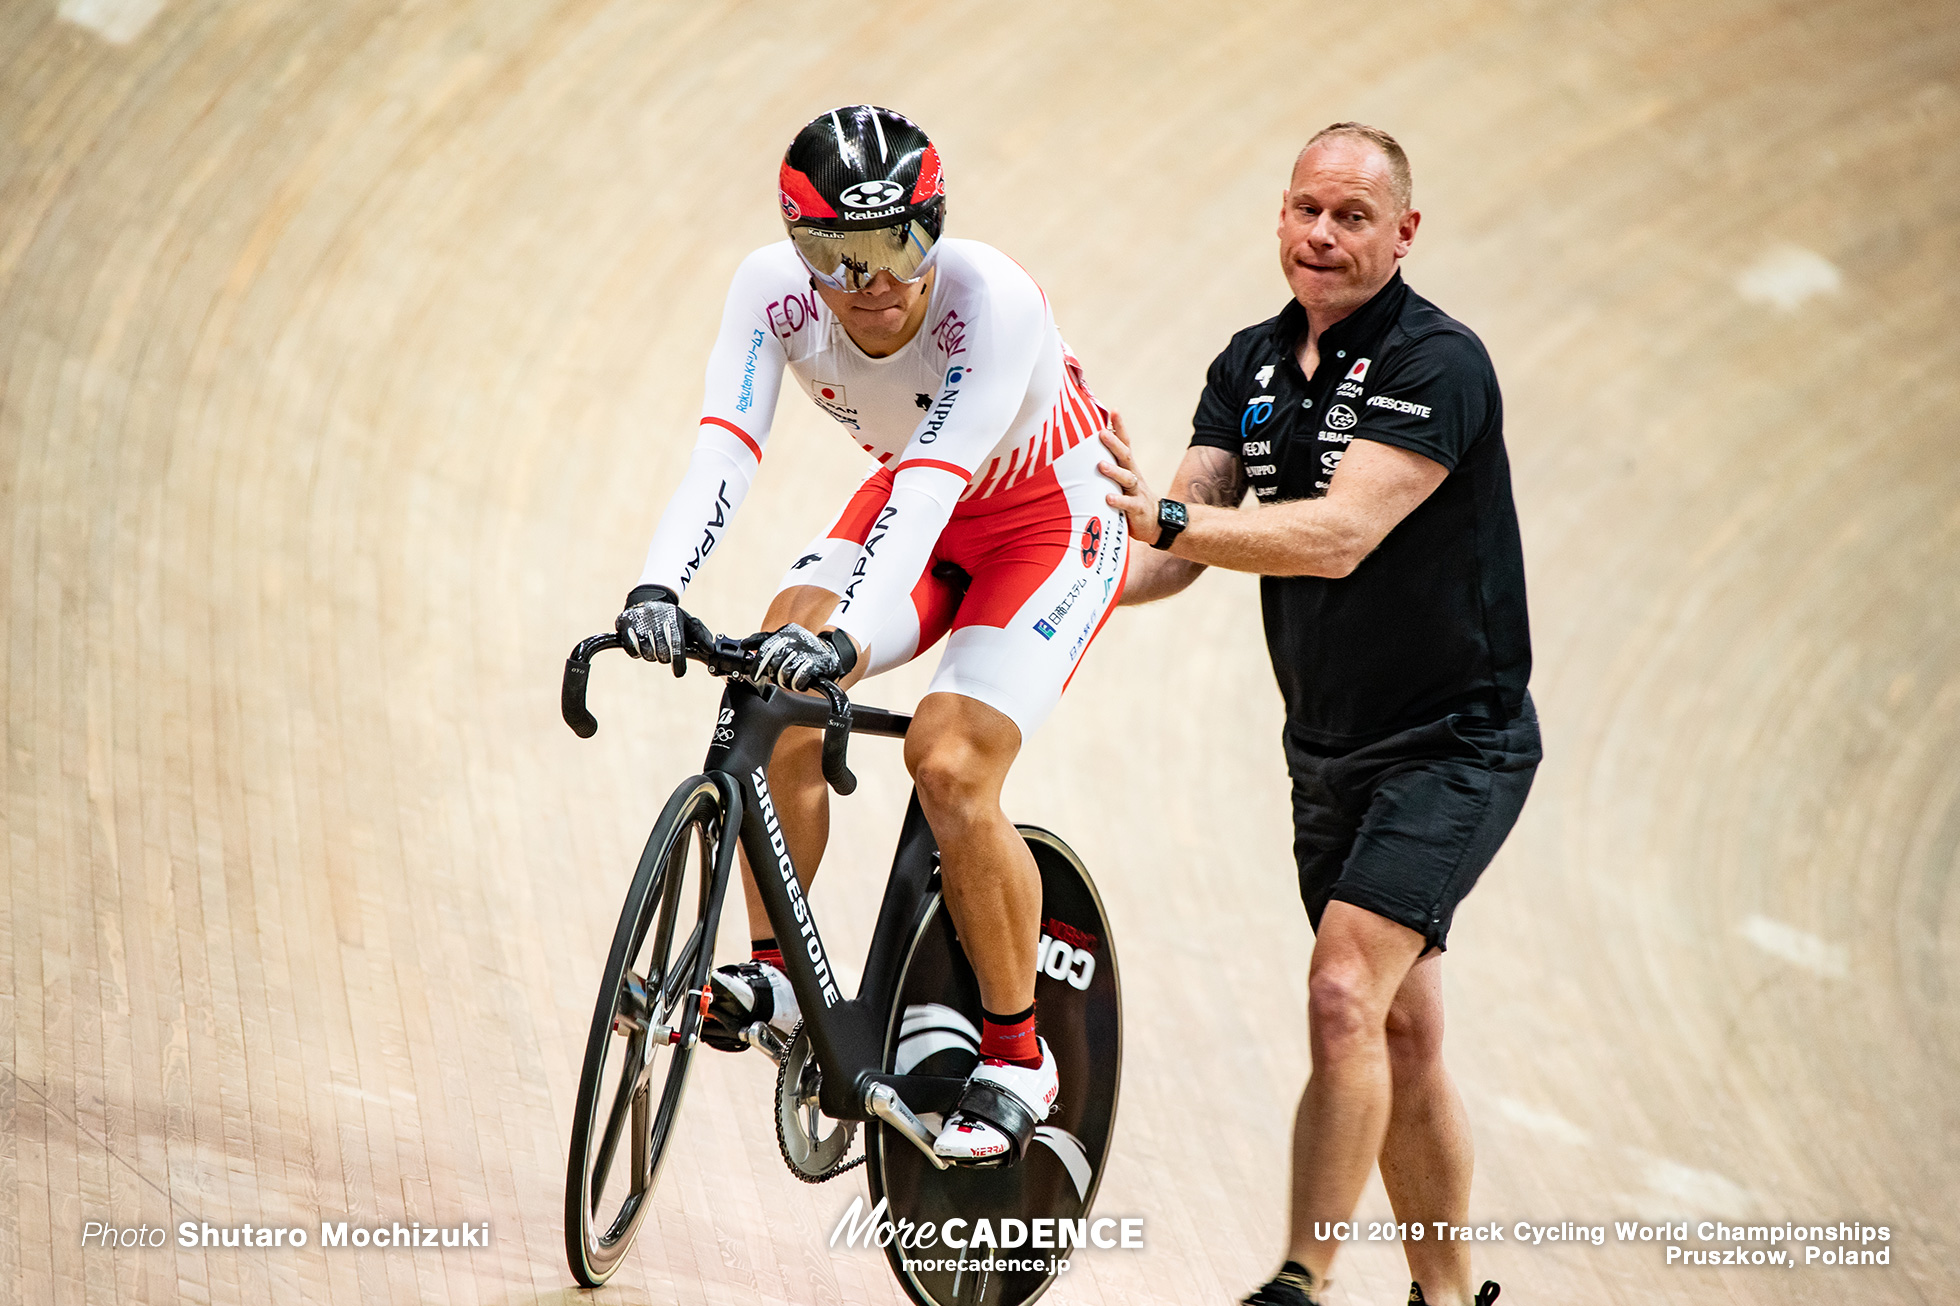 Men's Keirin 1st Round / 2019 Track Cycling World Championships Pruszków, Poland